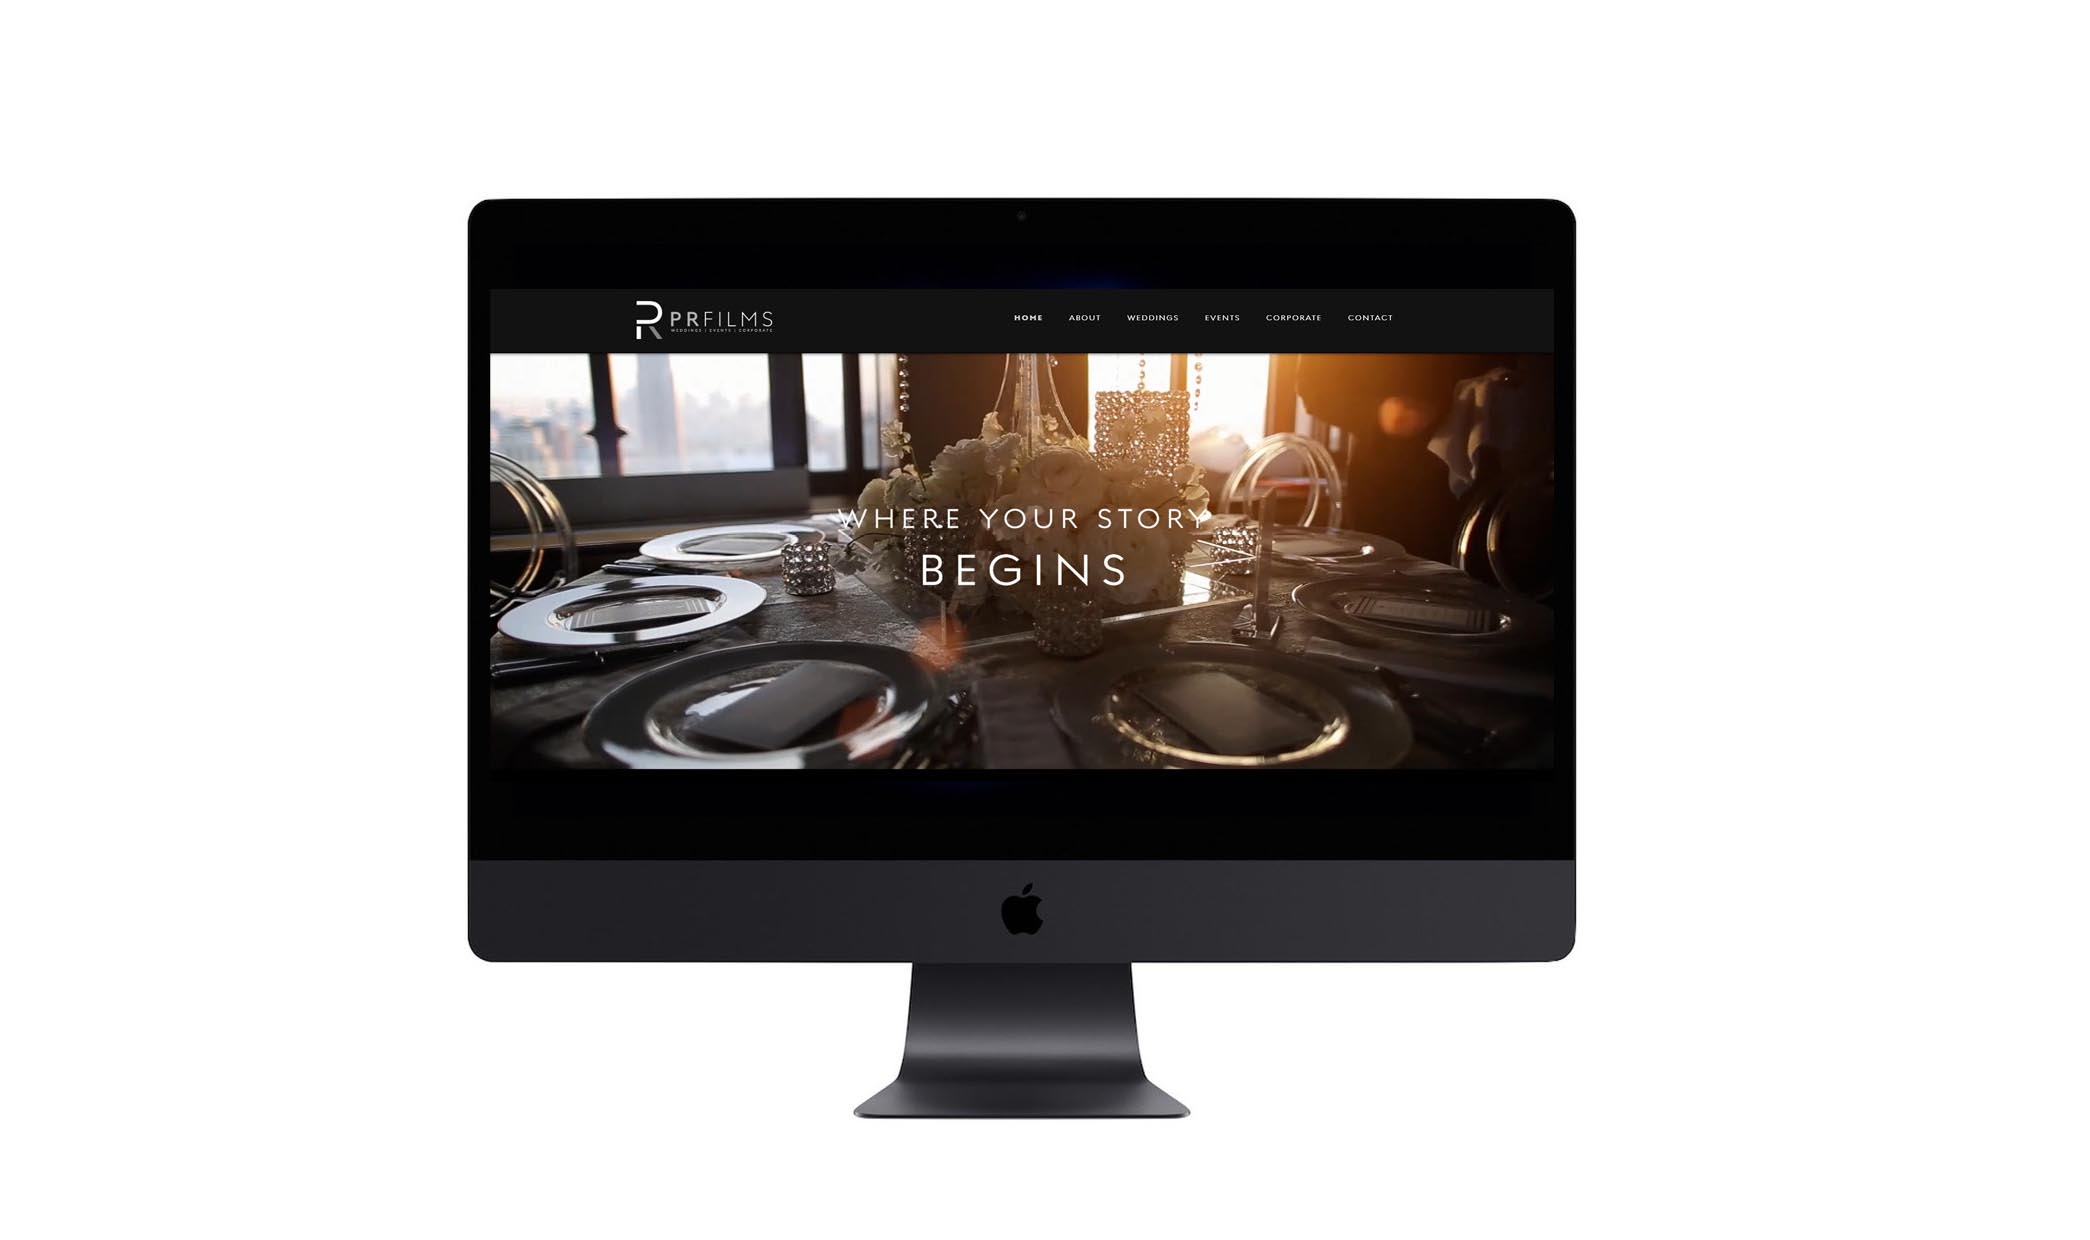 videographer - video production company website and brand identity design